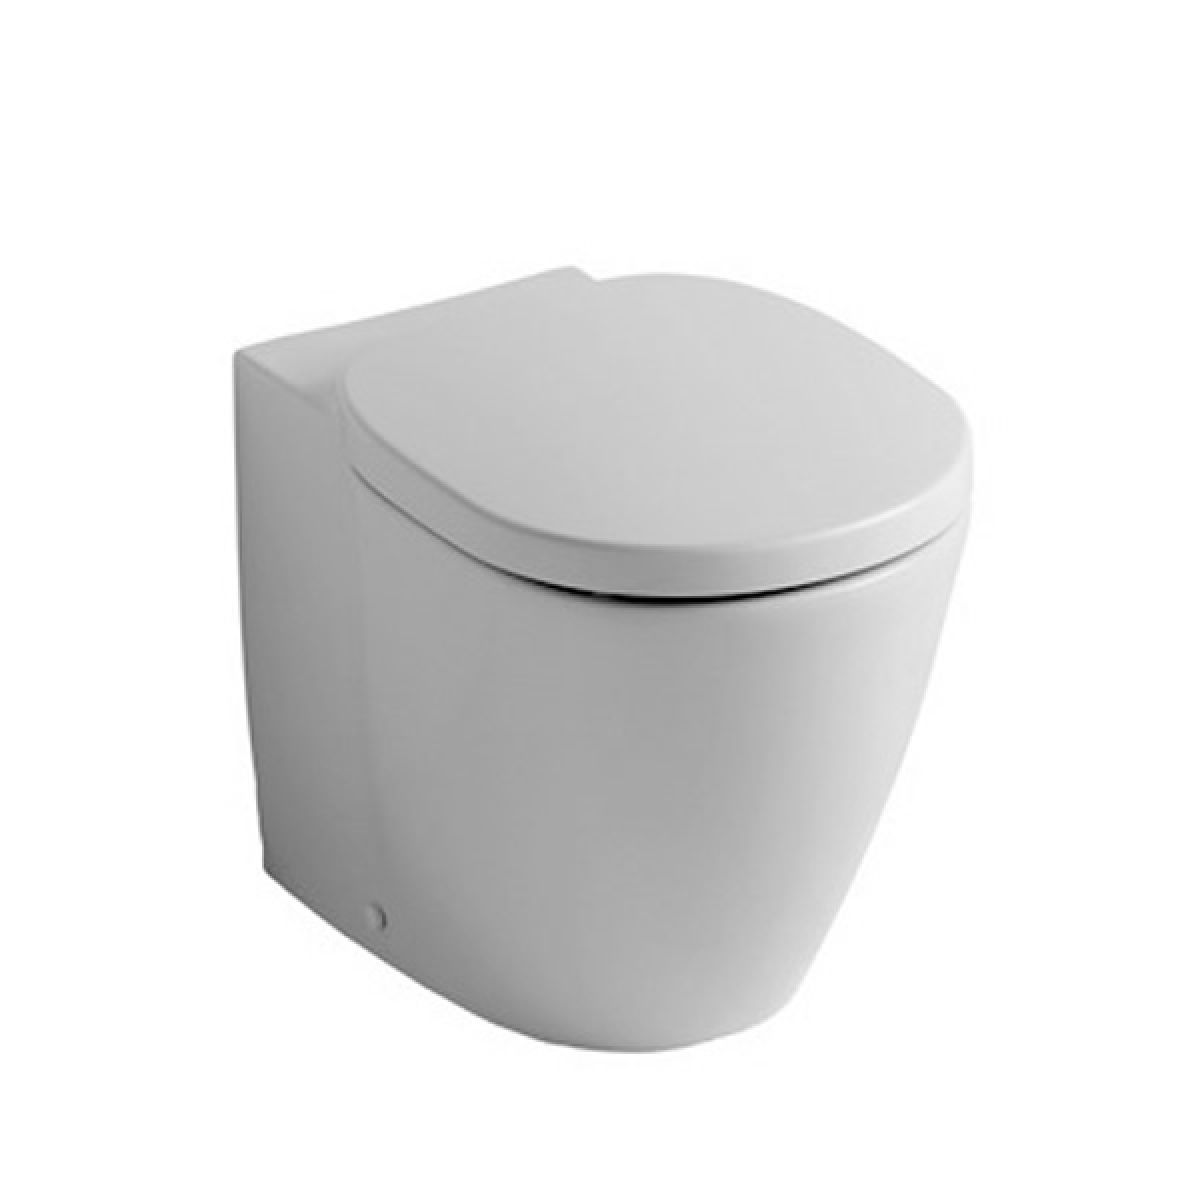 Connect Wc Ideal Standard Wc Elegant Ideal Standard Wc With Ideal Standard